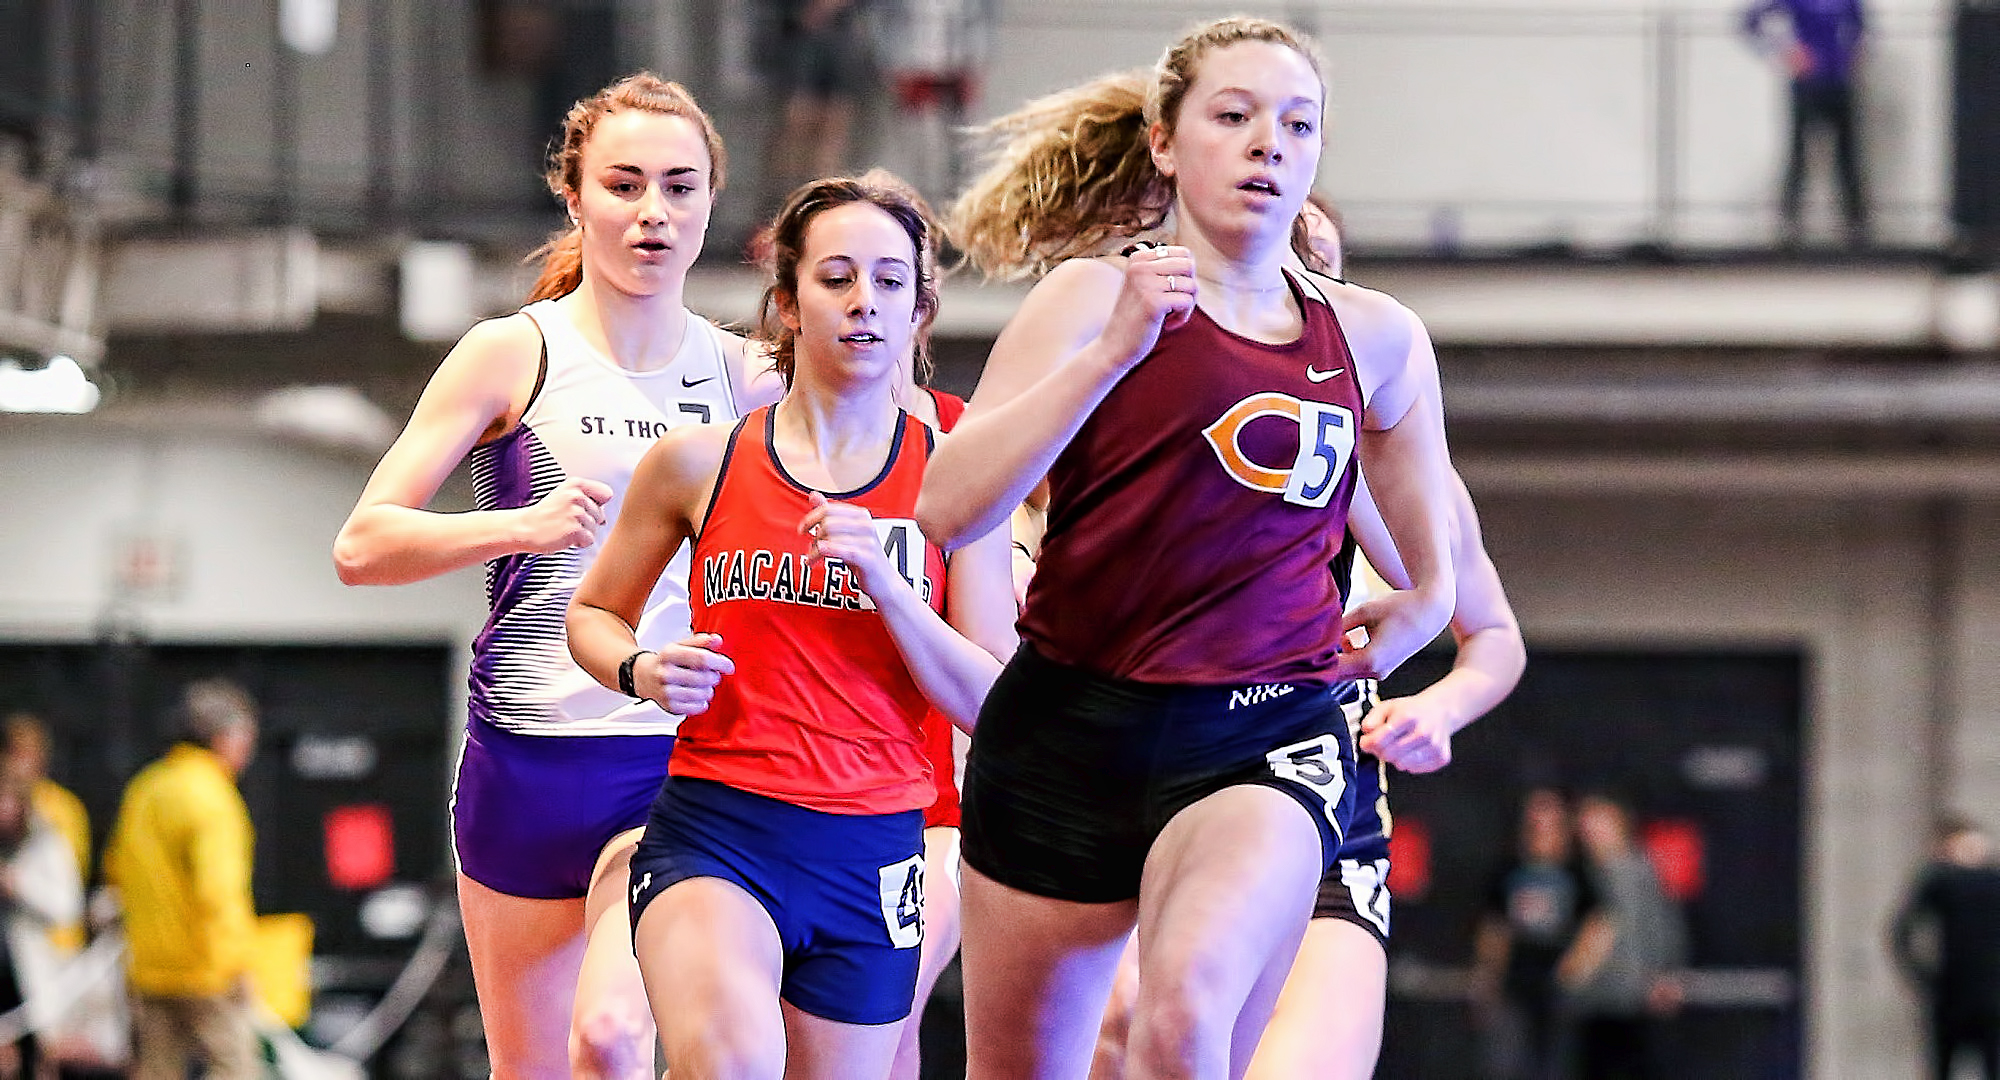 Sophomore Josie Herrmann sprints past a pack of runners during her second-place finish in the 800 meters at the MIAC Indoor Meet. (Photo courtesy of Nathan Lodermeier)